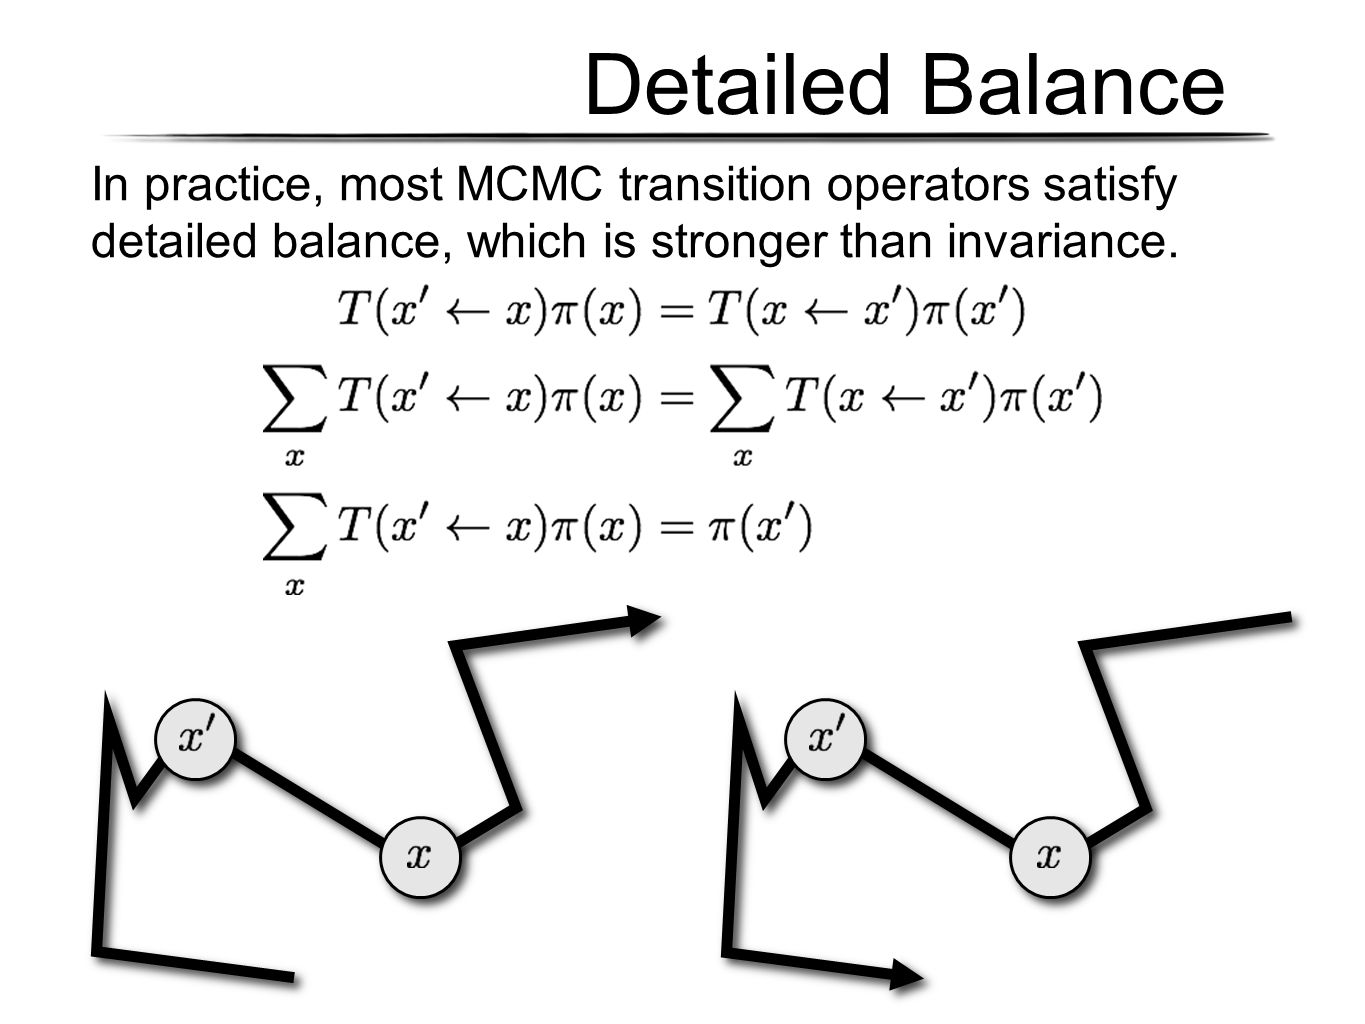 Detailed Balance In practice, most MCMC transition operators satisfy detailed balance, which is stronger than invariance.